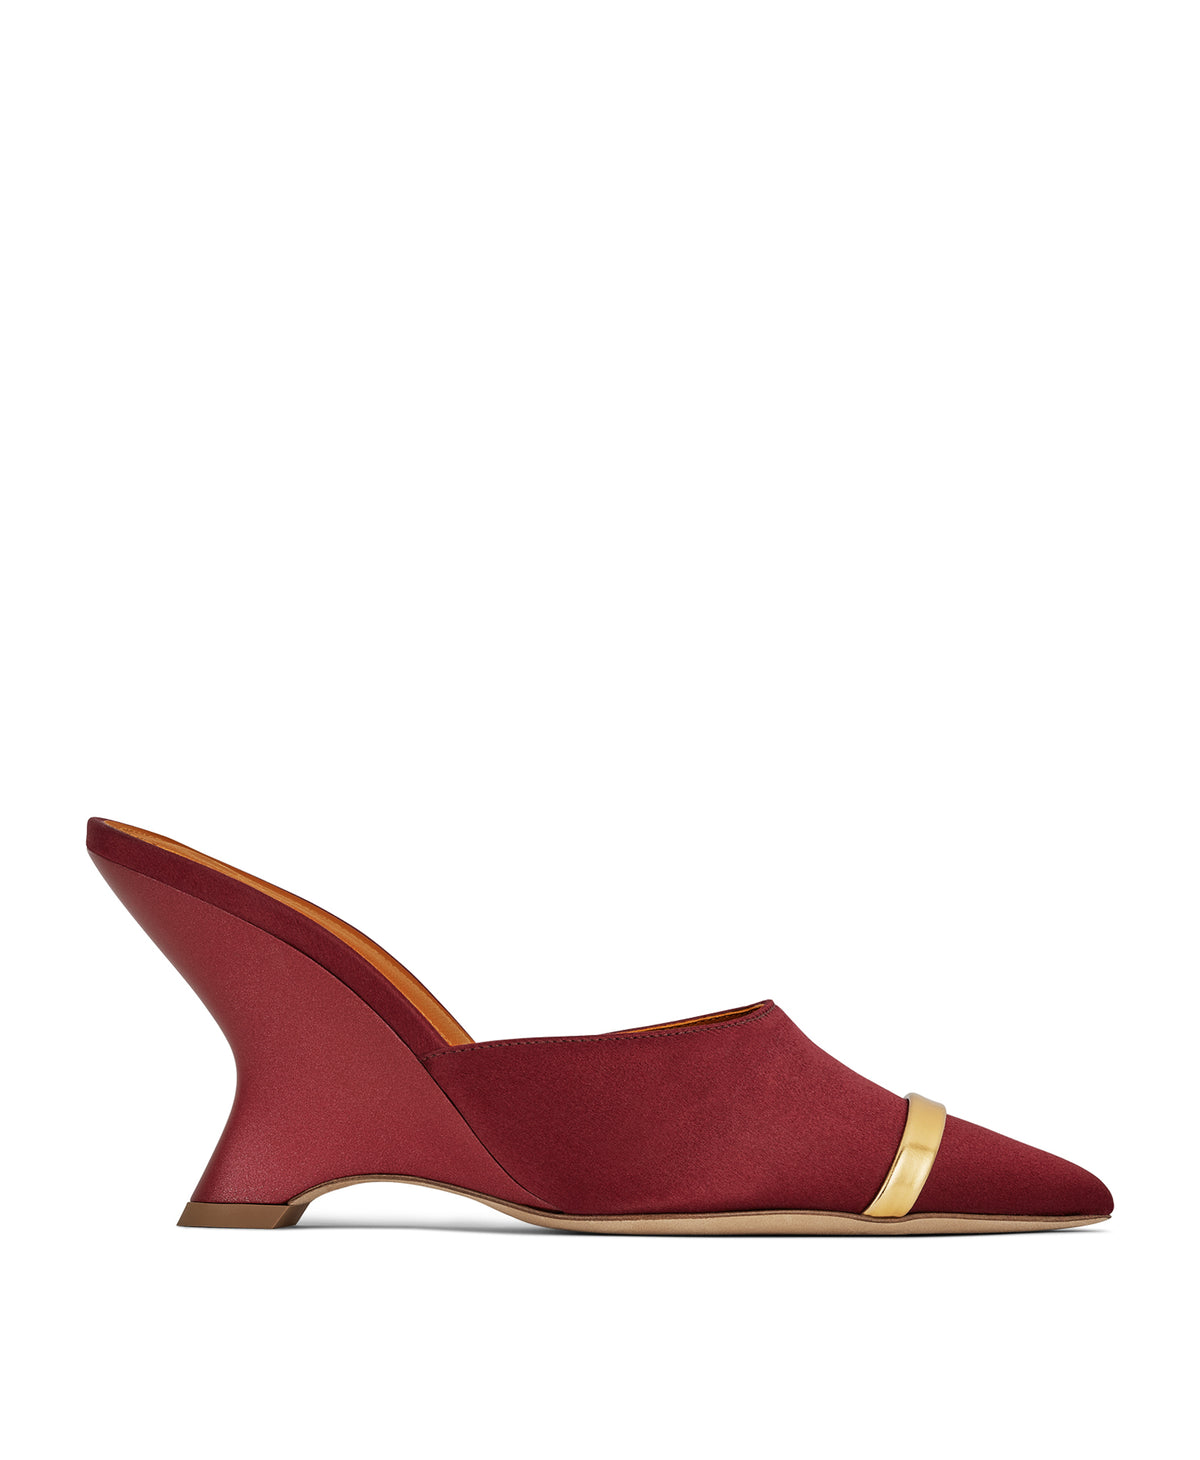 Women's Burgundy Satin Wedge Mules With Pointed Toe Malone Souliers Marilyn